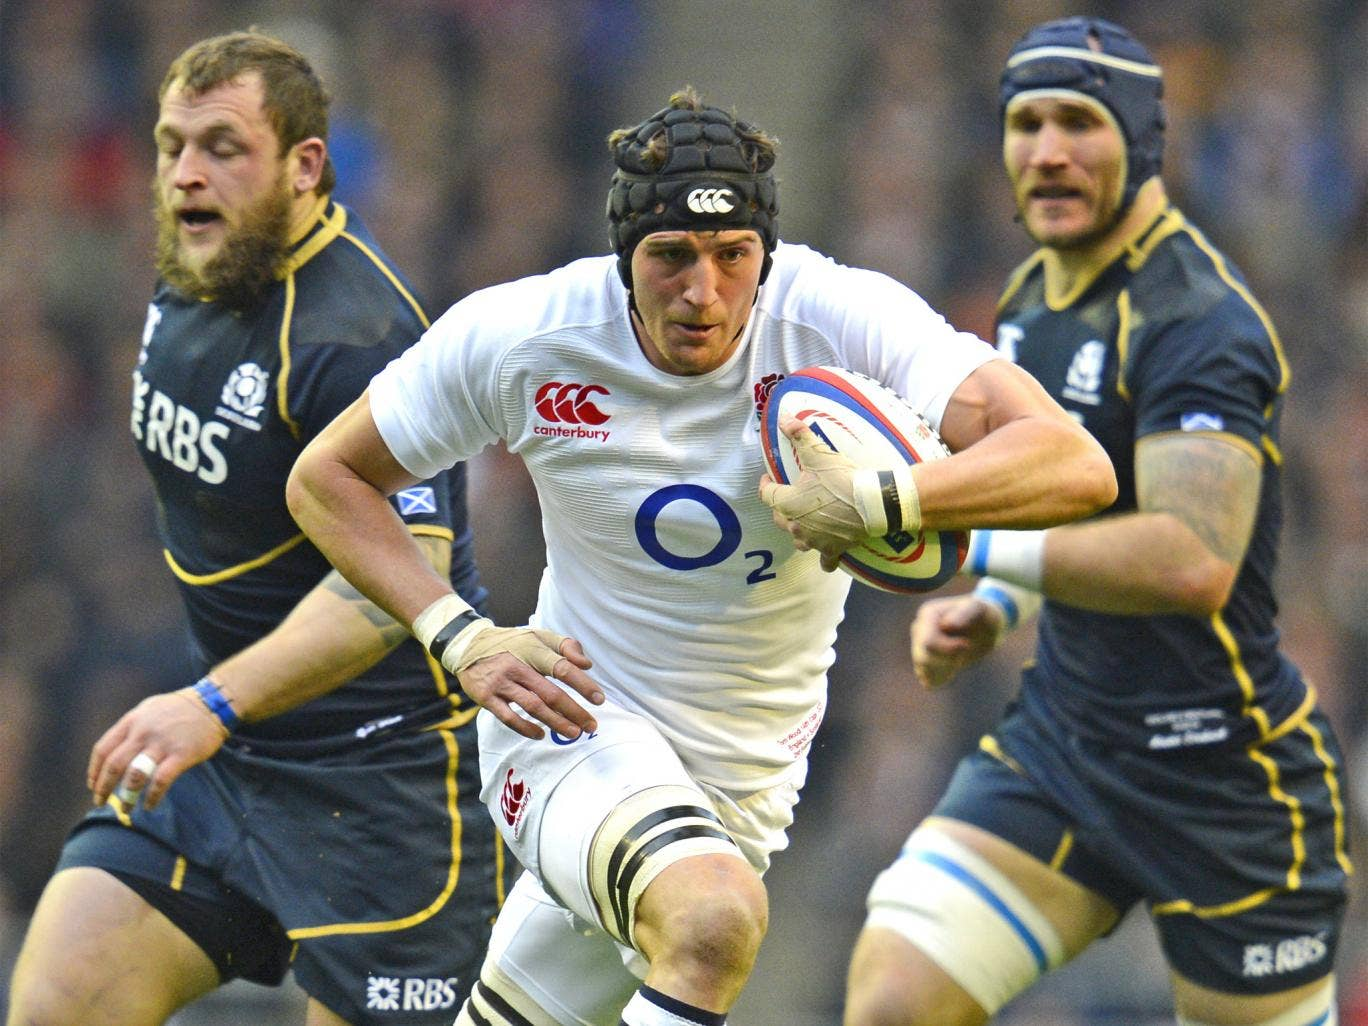 Tom Wood will lead England against Argentina